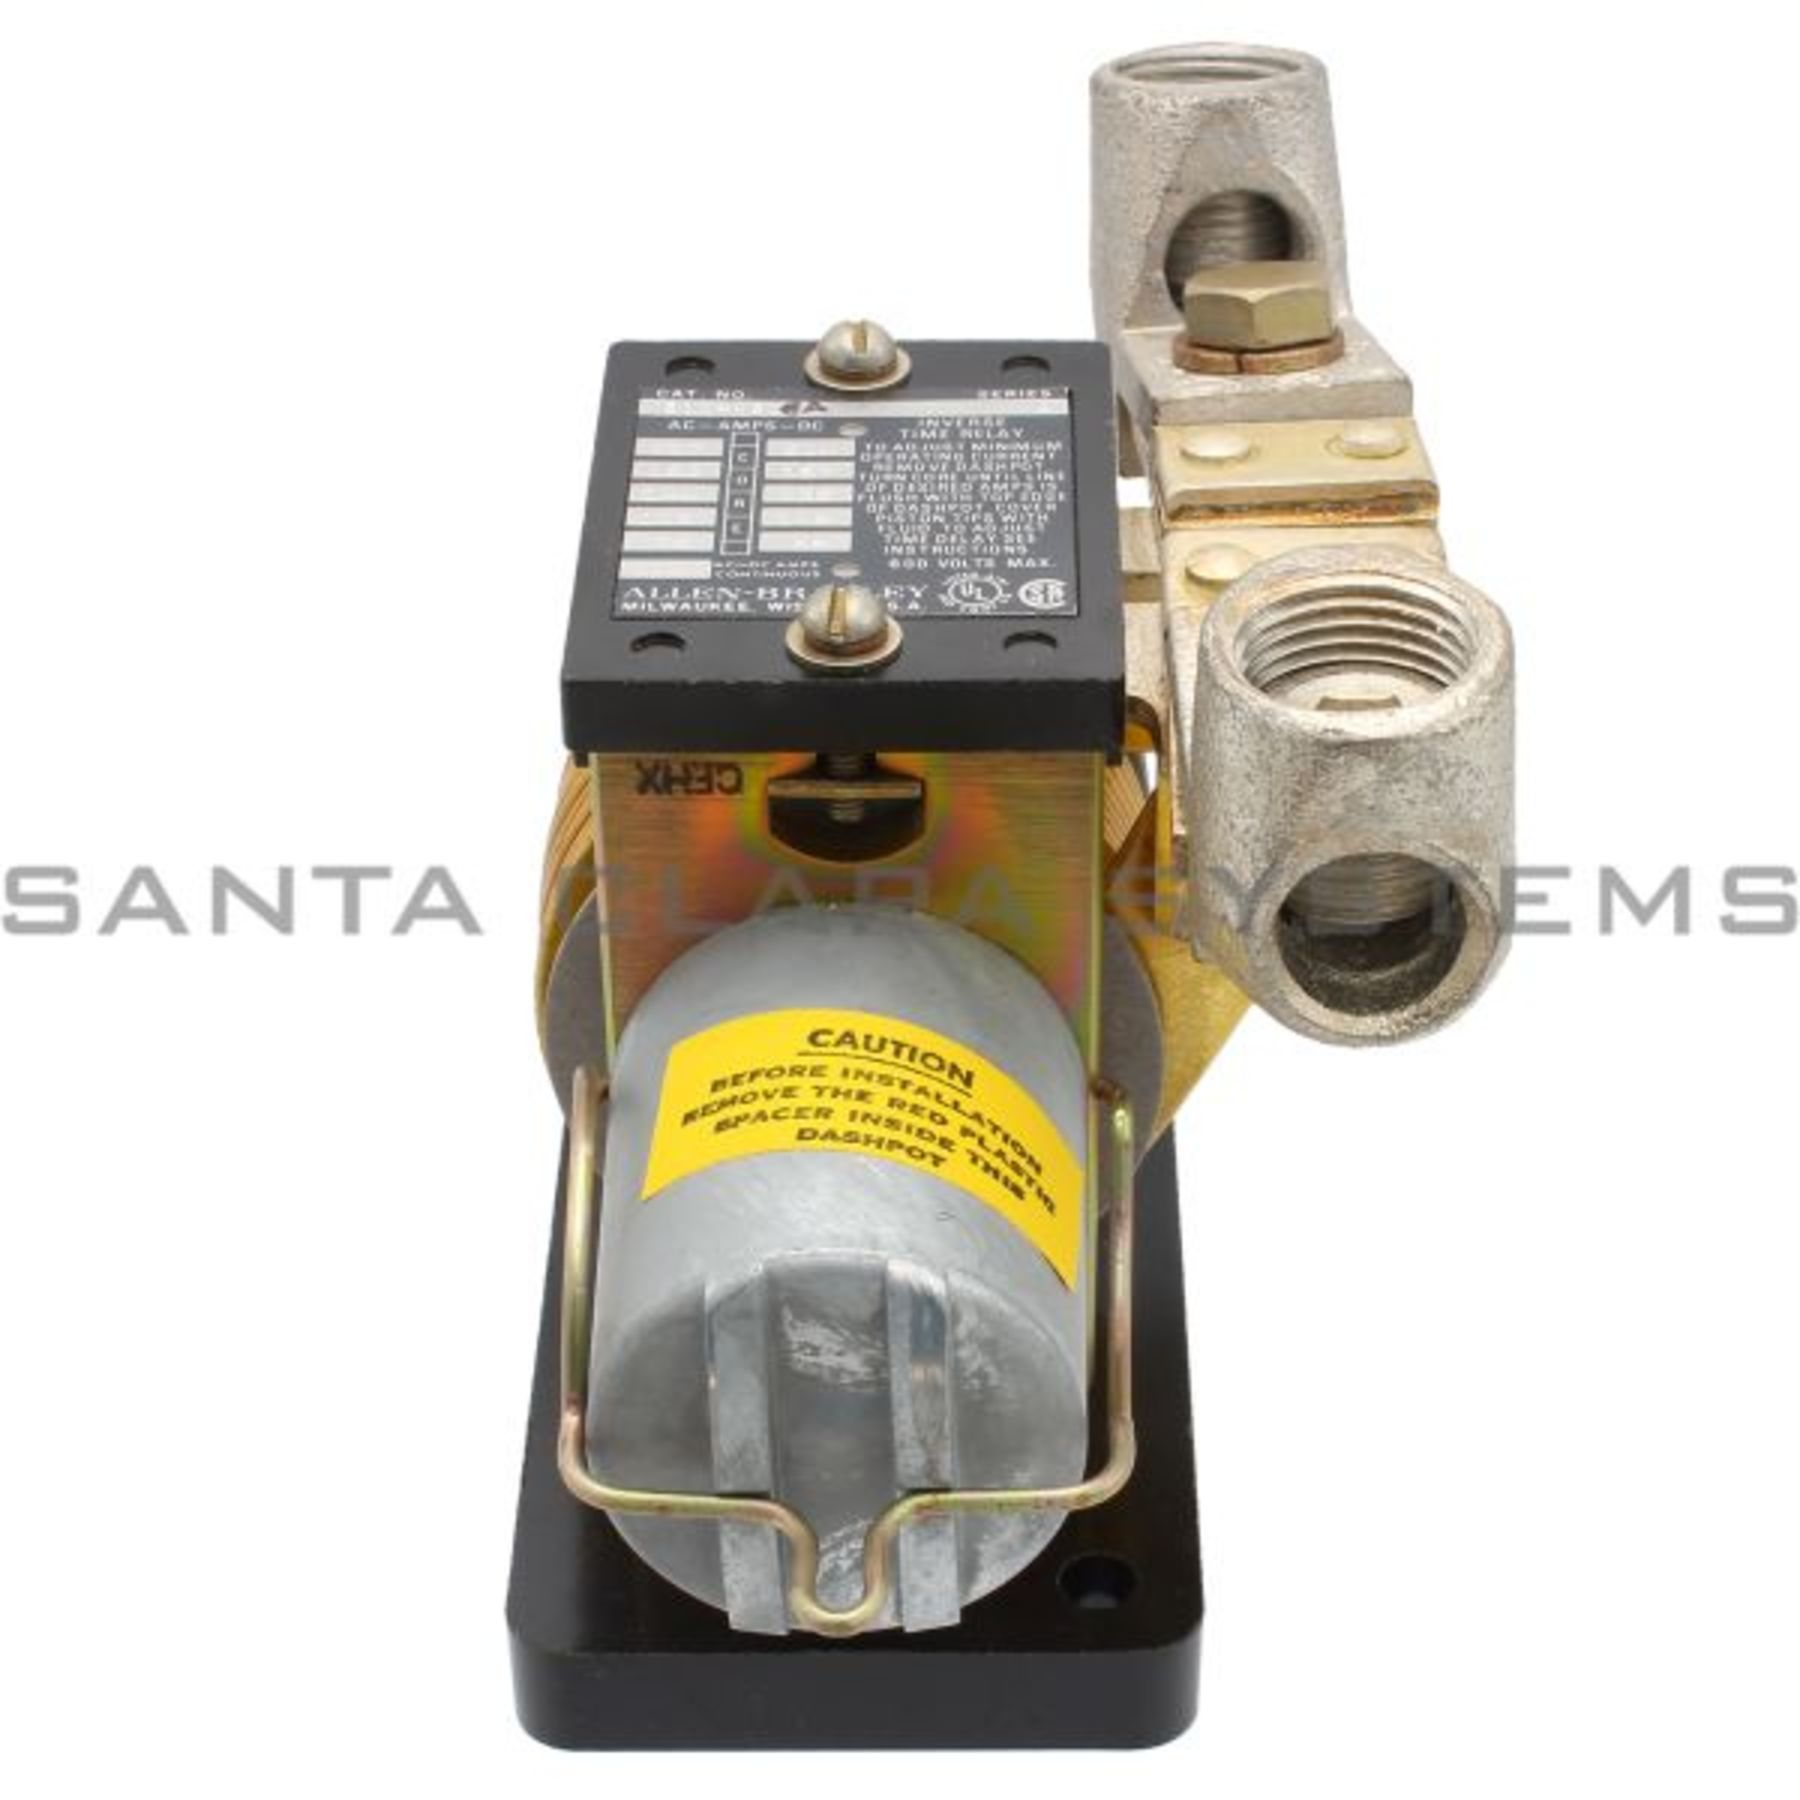 810 A21a Inverse Time Current Relays In Stock And Ready To Ship Relay Motor Allen Bradley Product Image